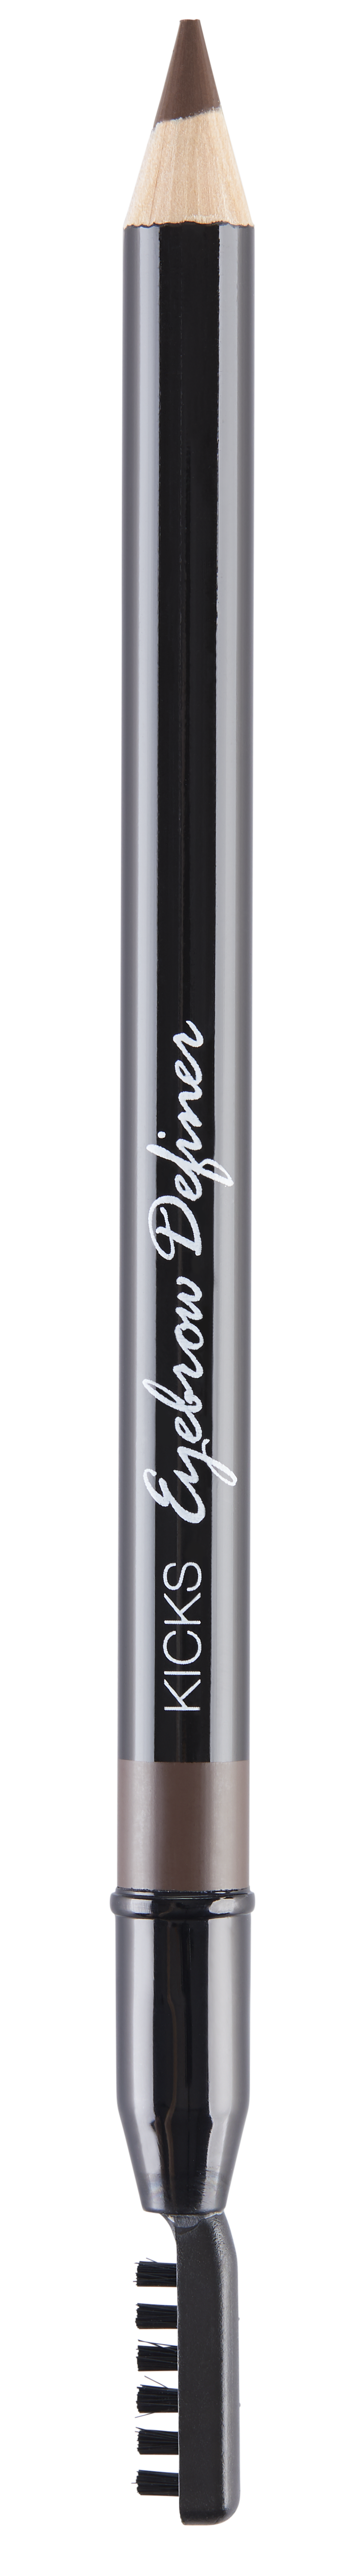 Eyebrow Definer Brown